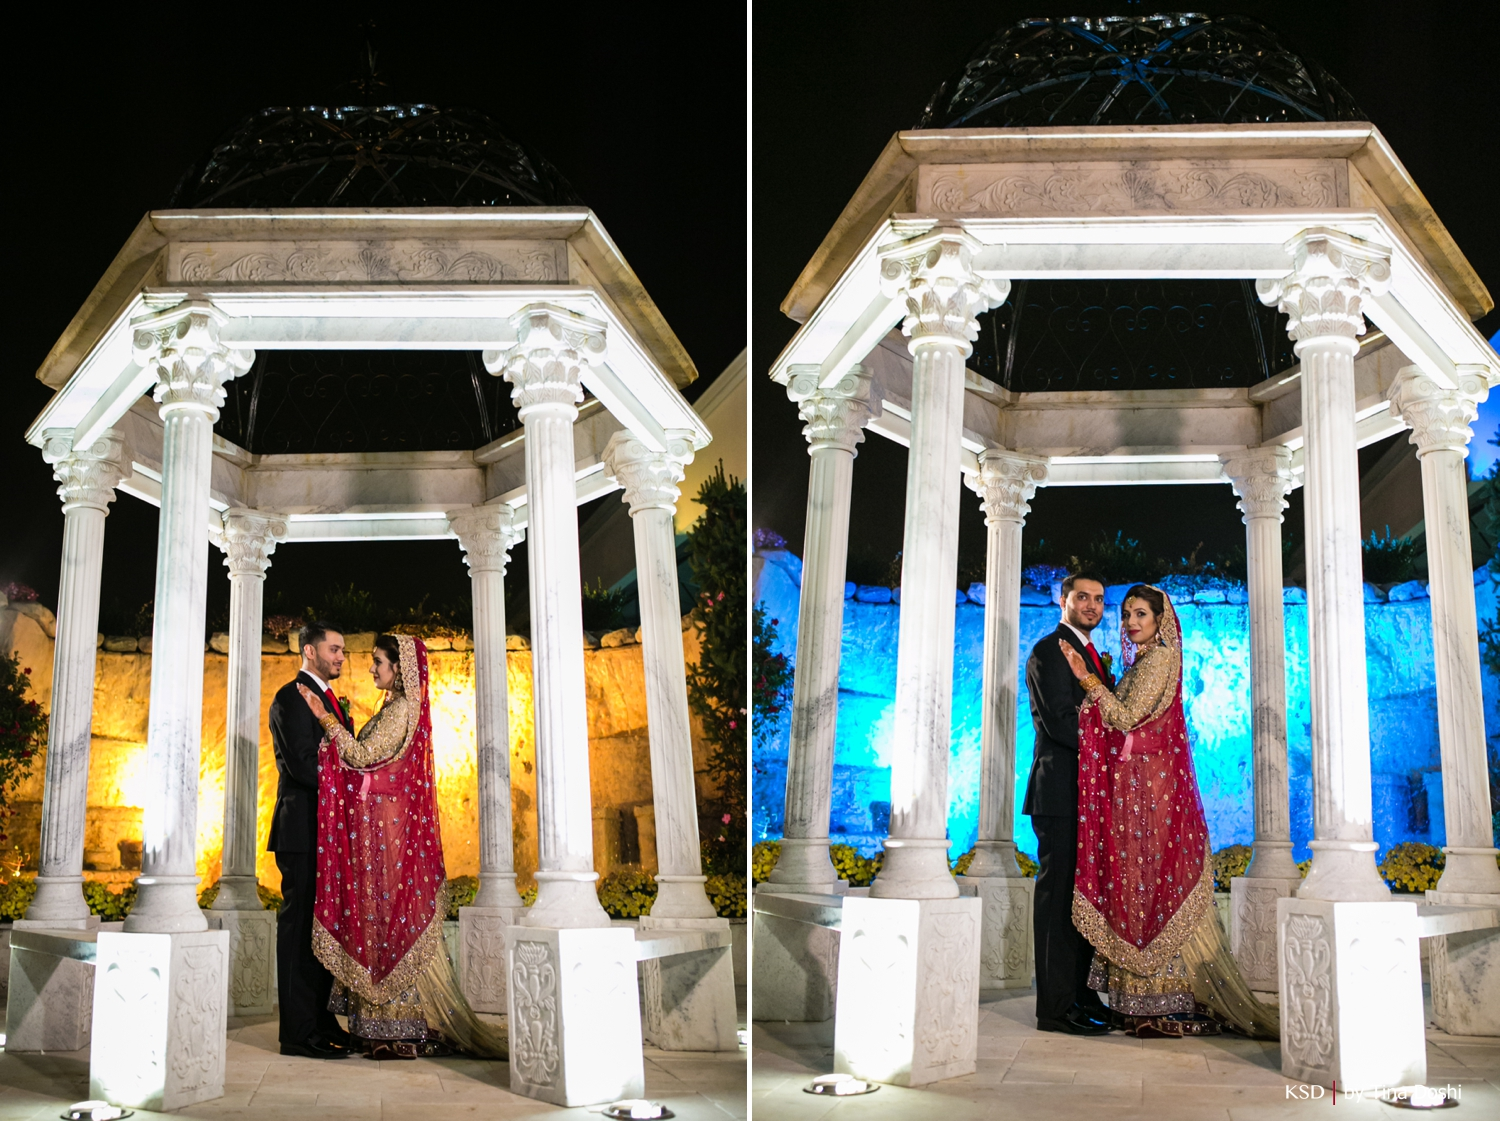 nj_south_asian_wedding_0089